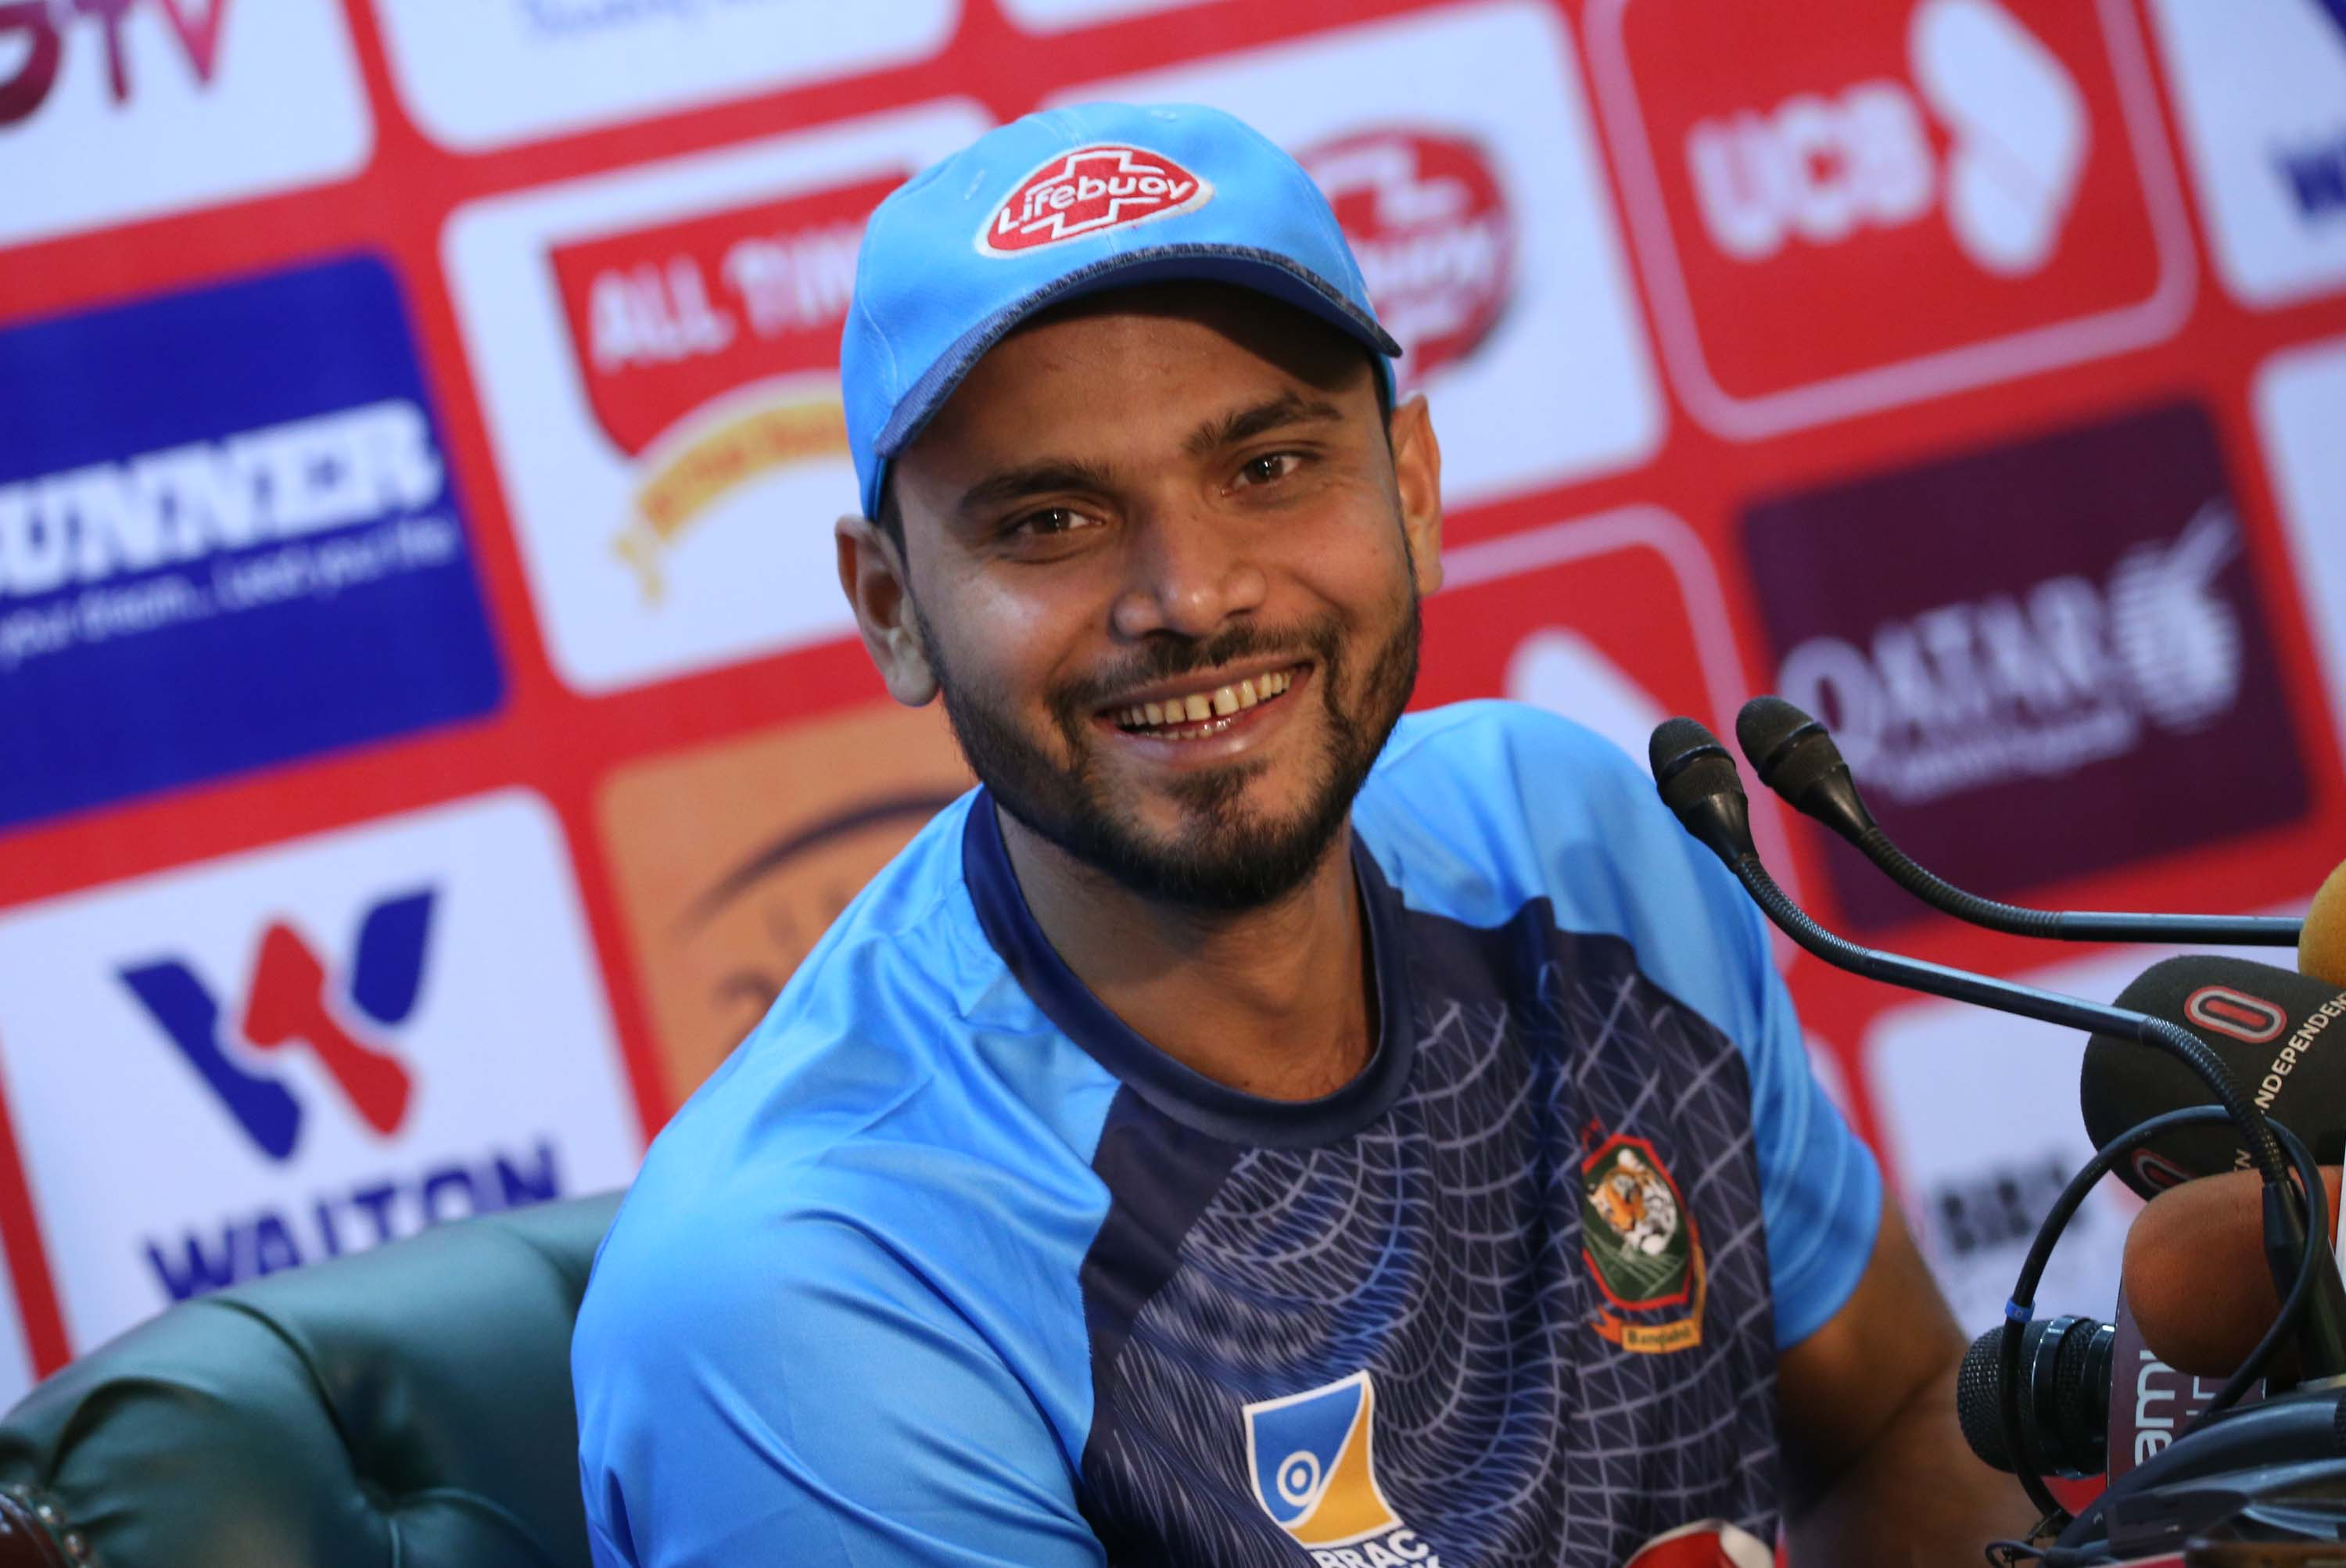 Return of Shakib, Tamim a big relief for team: Mashrafe